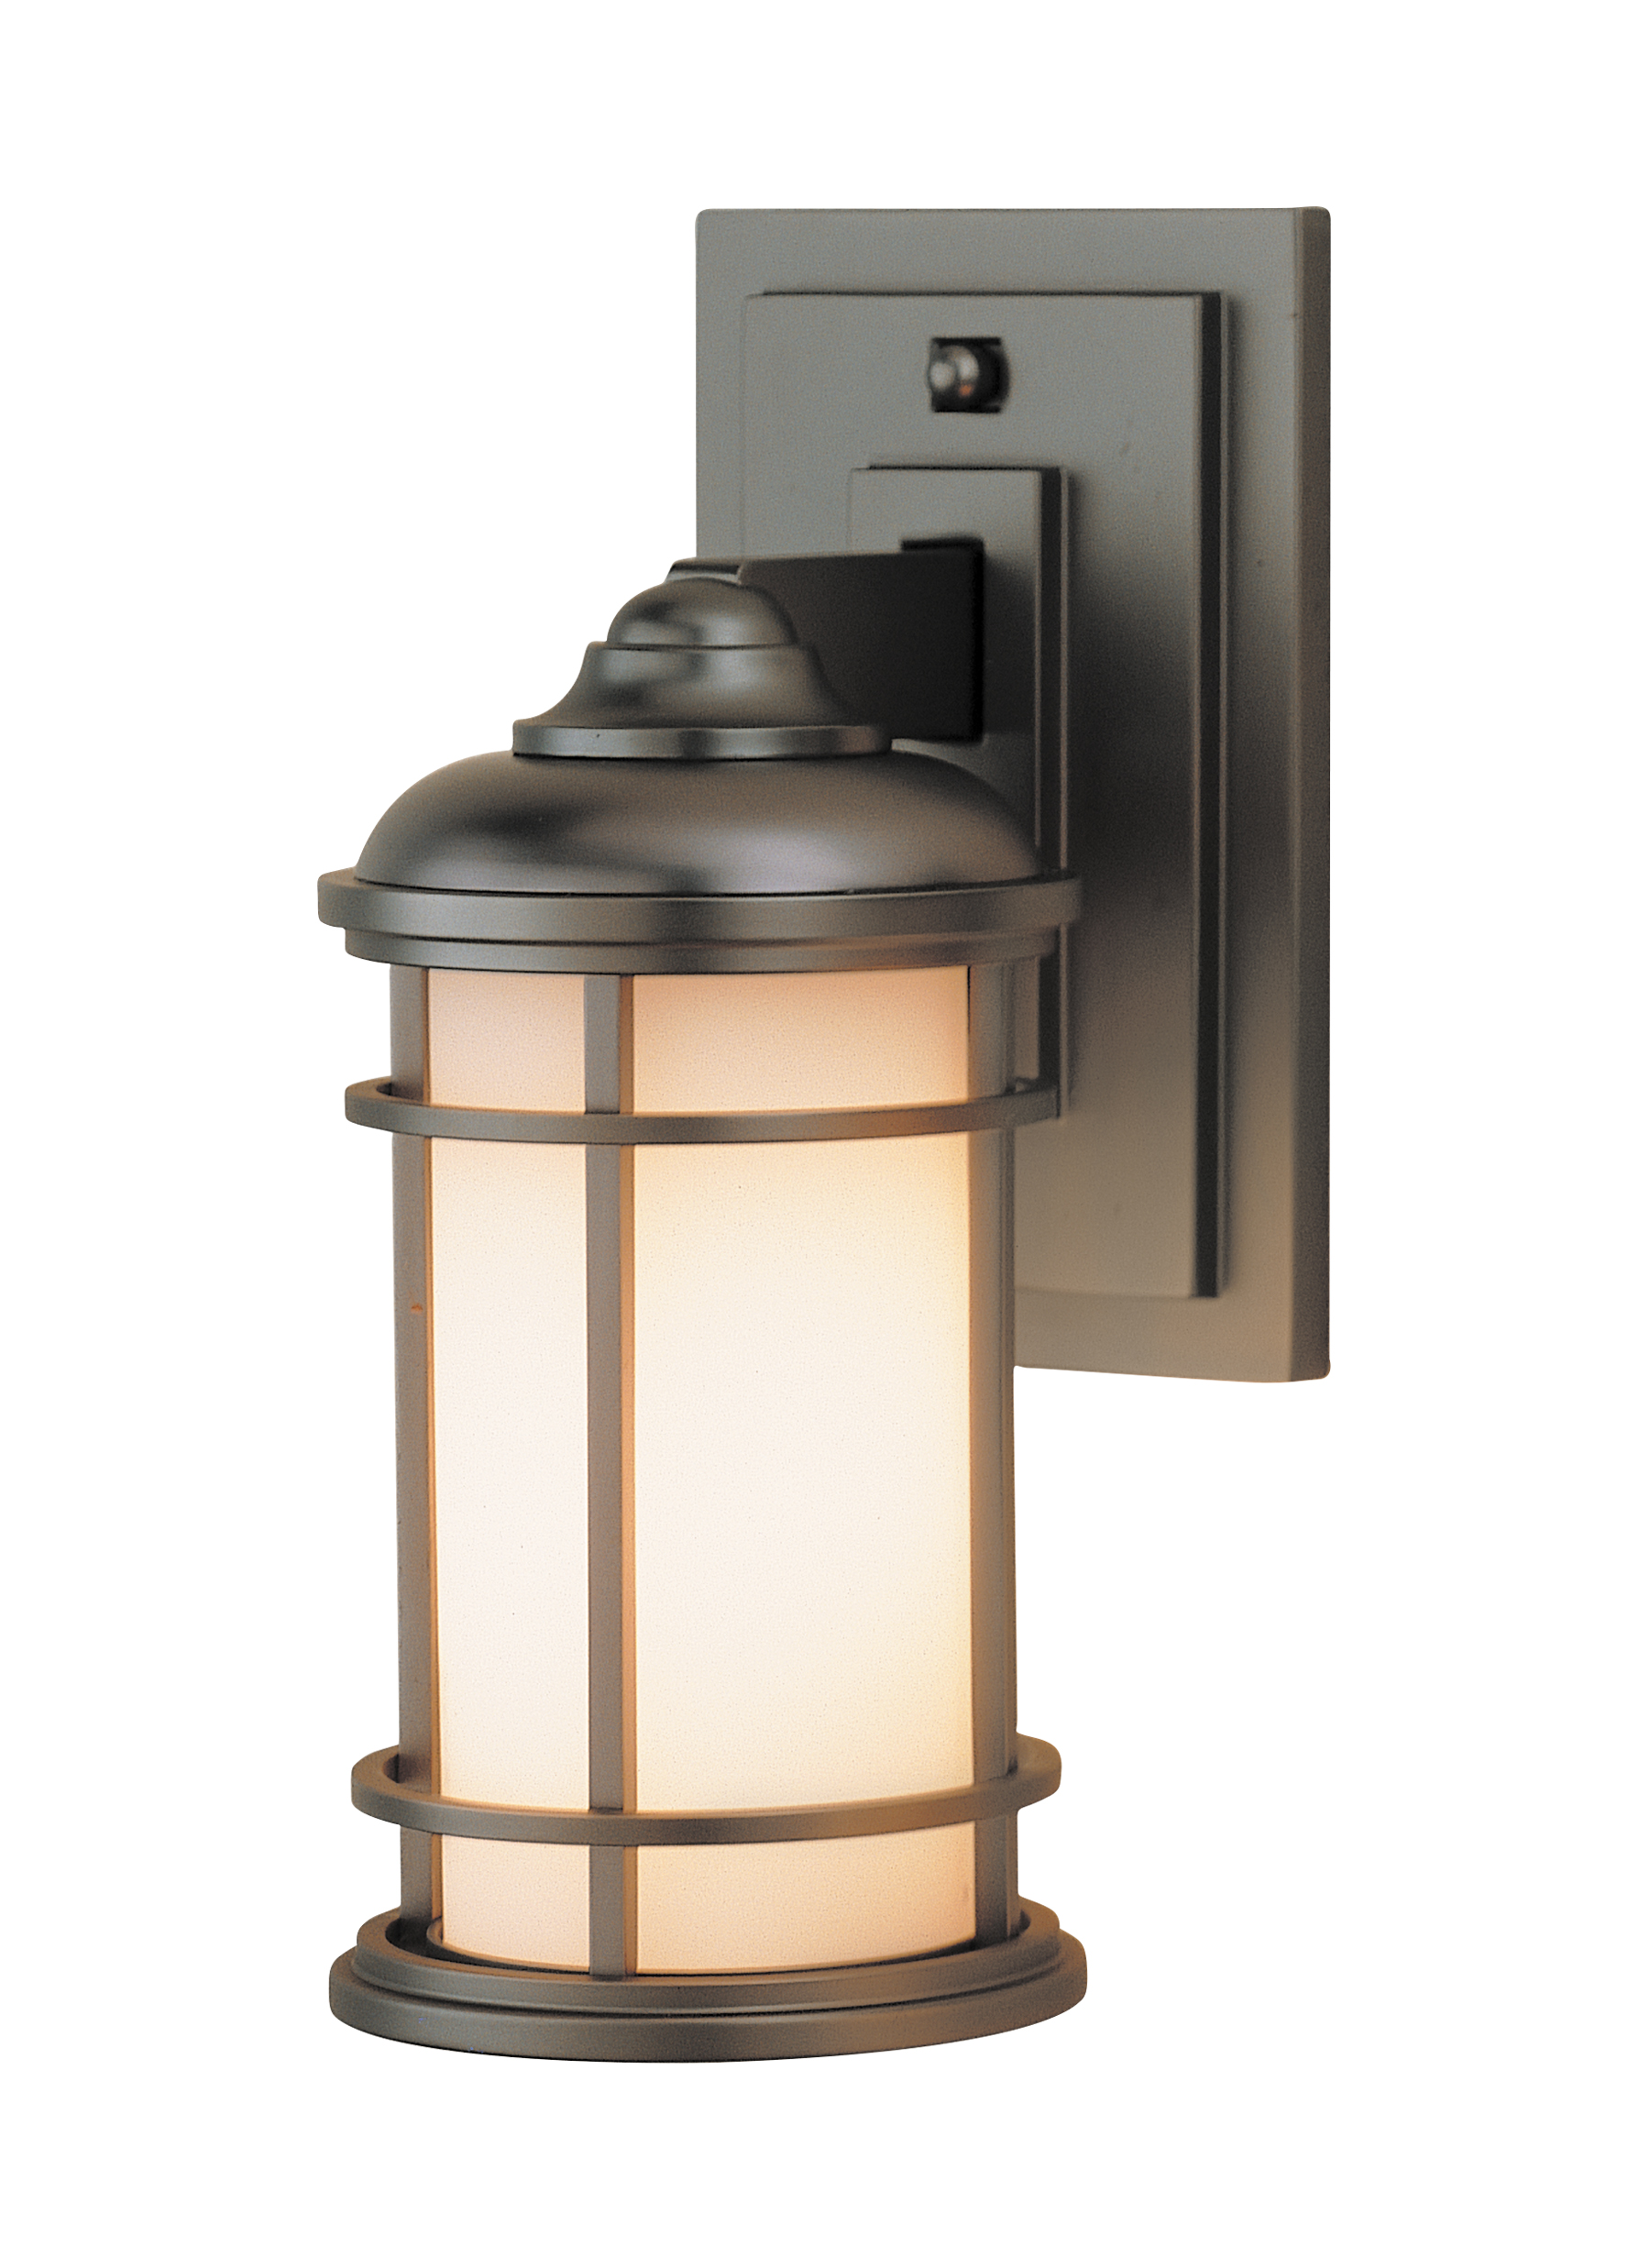 H - Exterior Light -  Feiss - OL2200BB LED.jpg